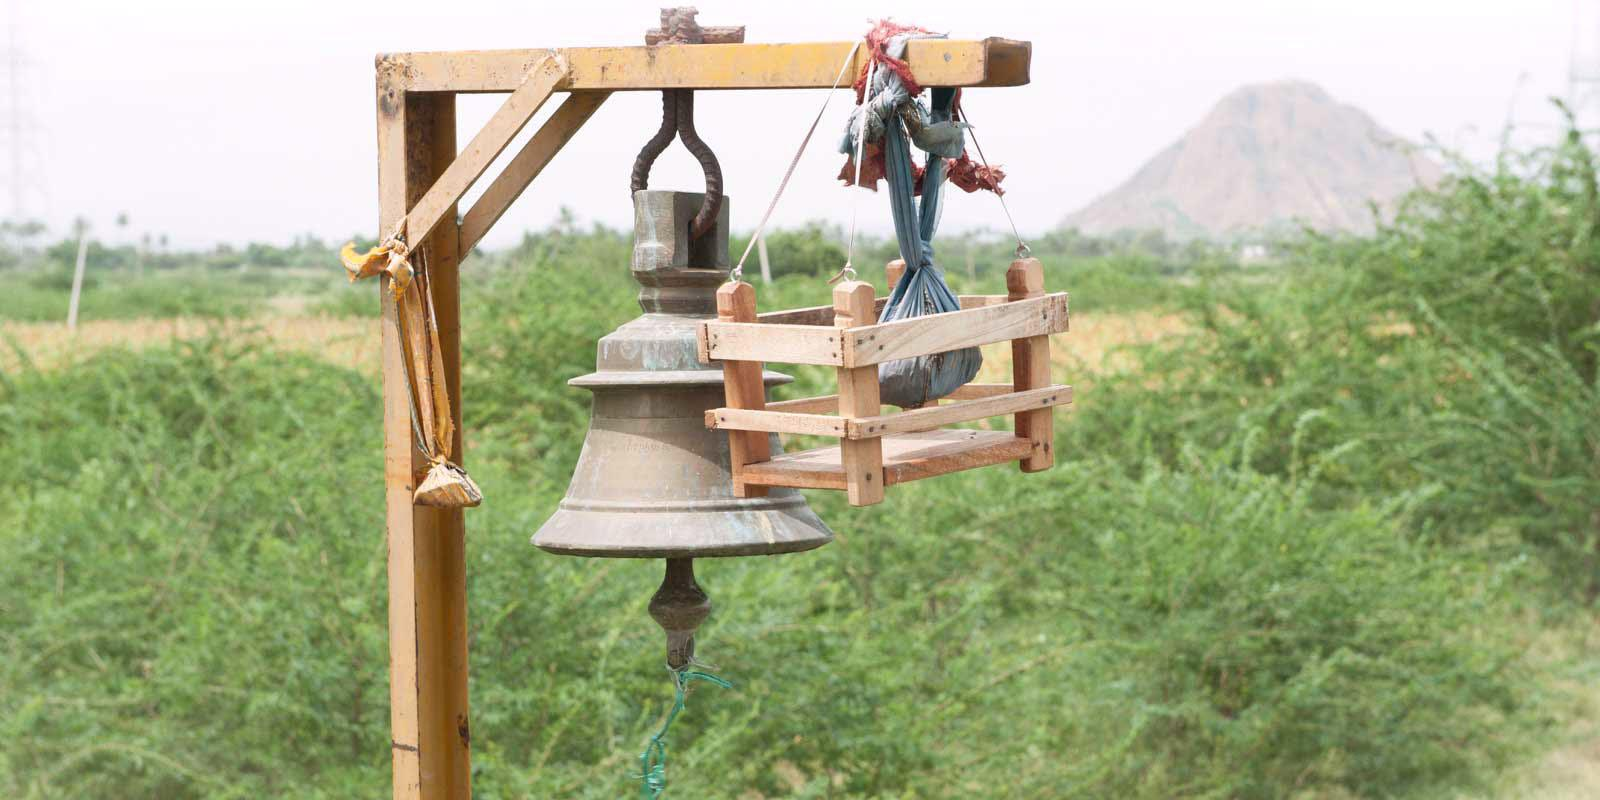 A temple bell with offerings tied to it.